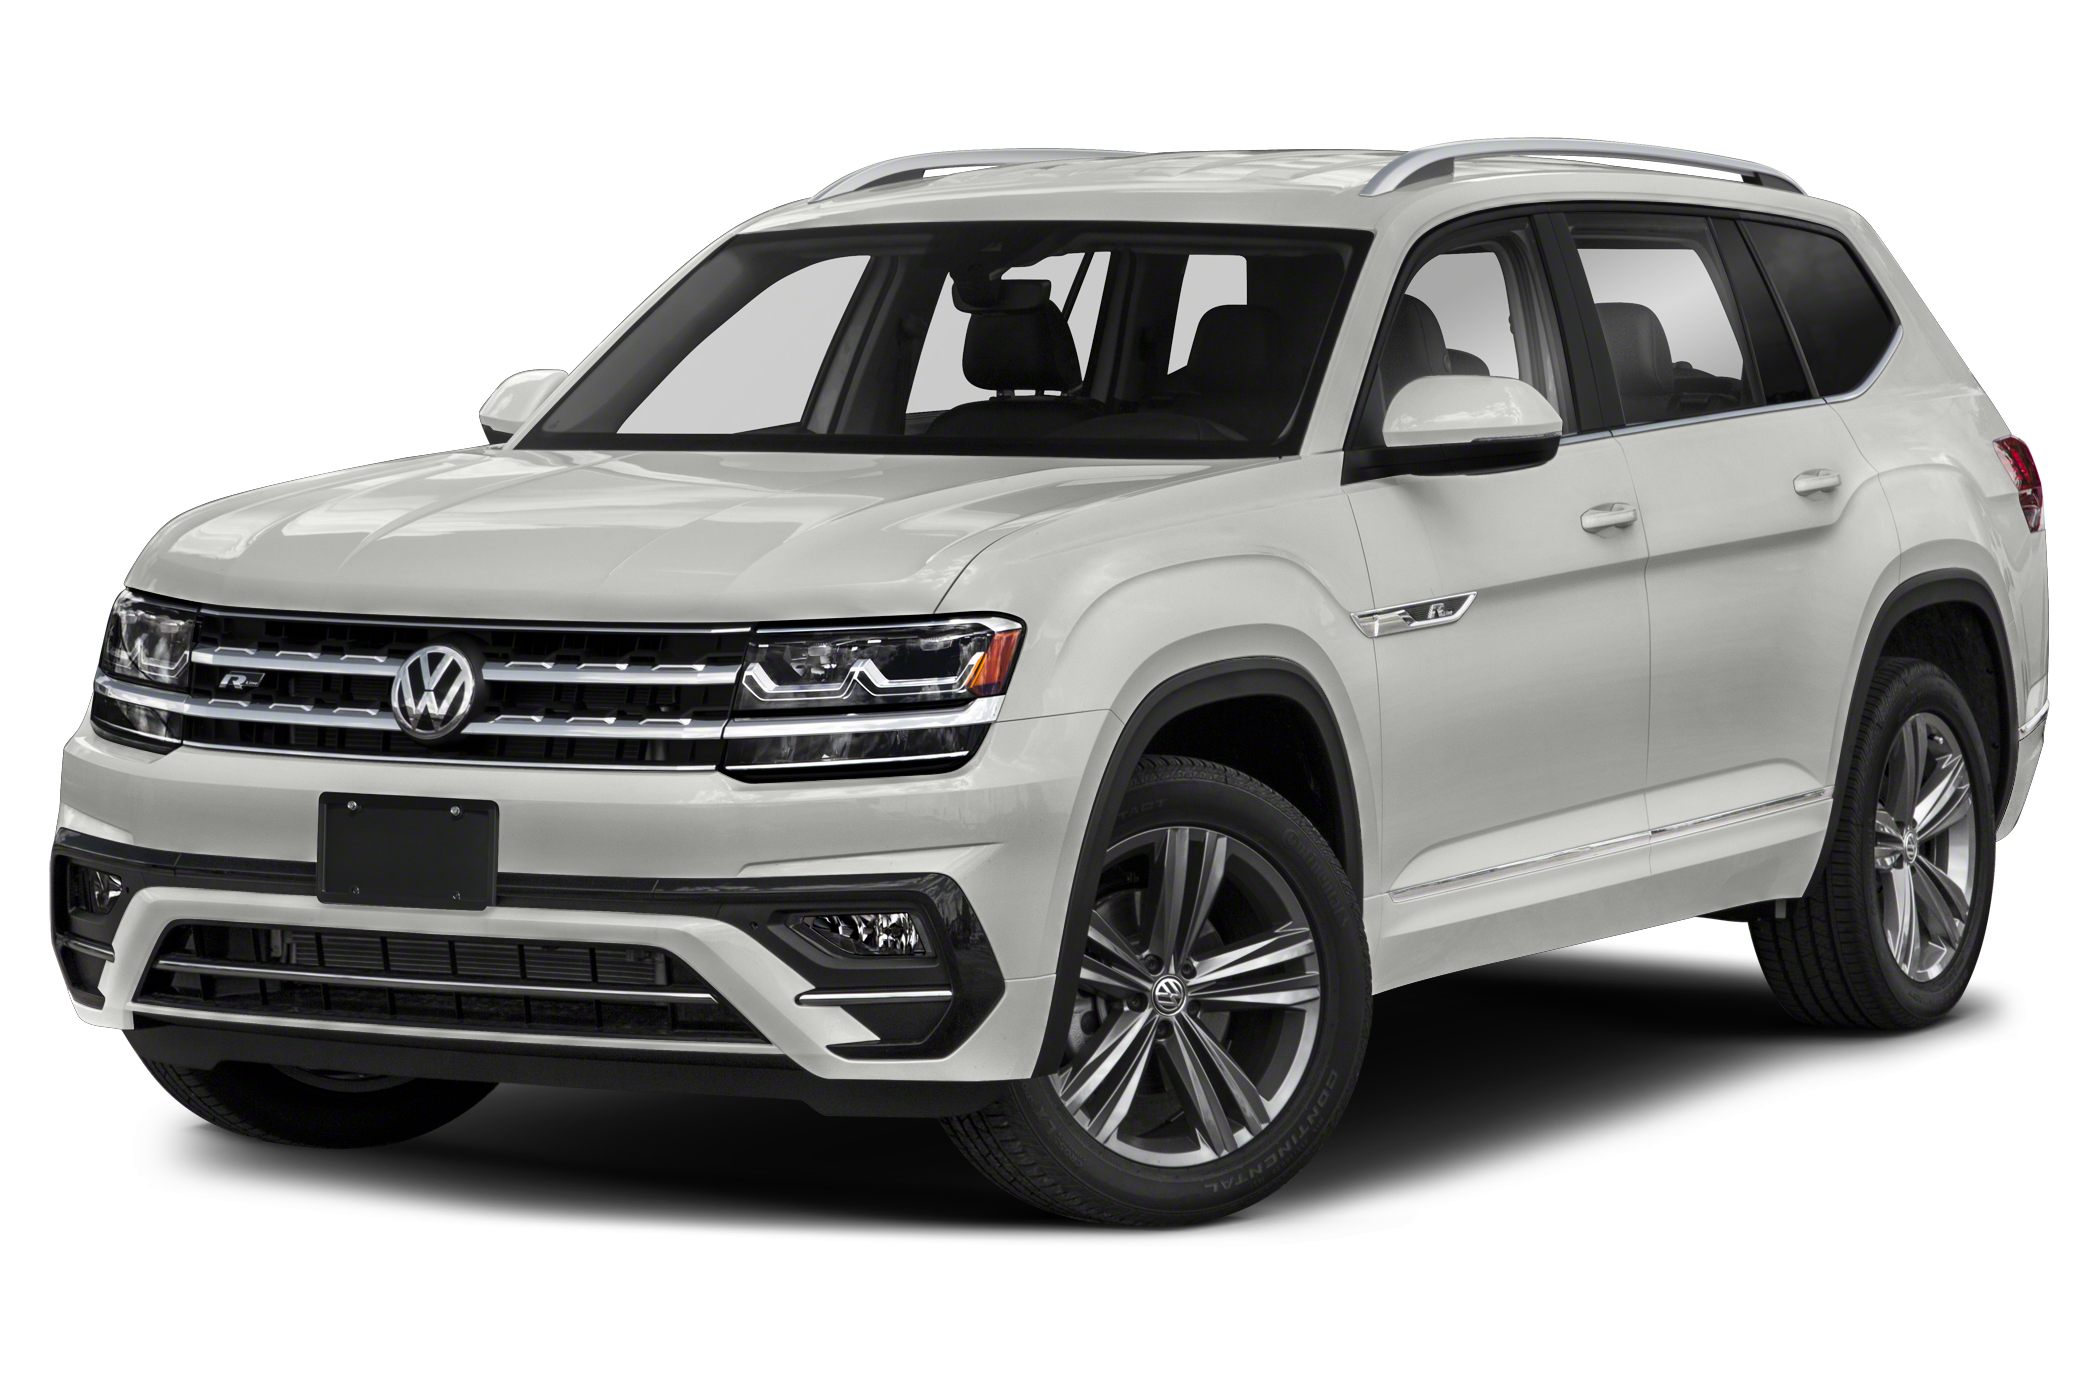 2020 Volkswagen Atlas 3 6l V6 Sel R Line 4dr All Wheel Drive 4motion Pricing And Options